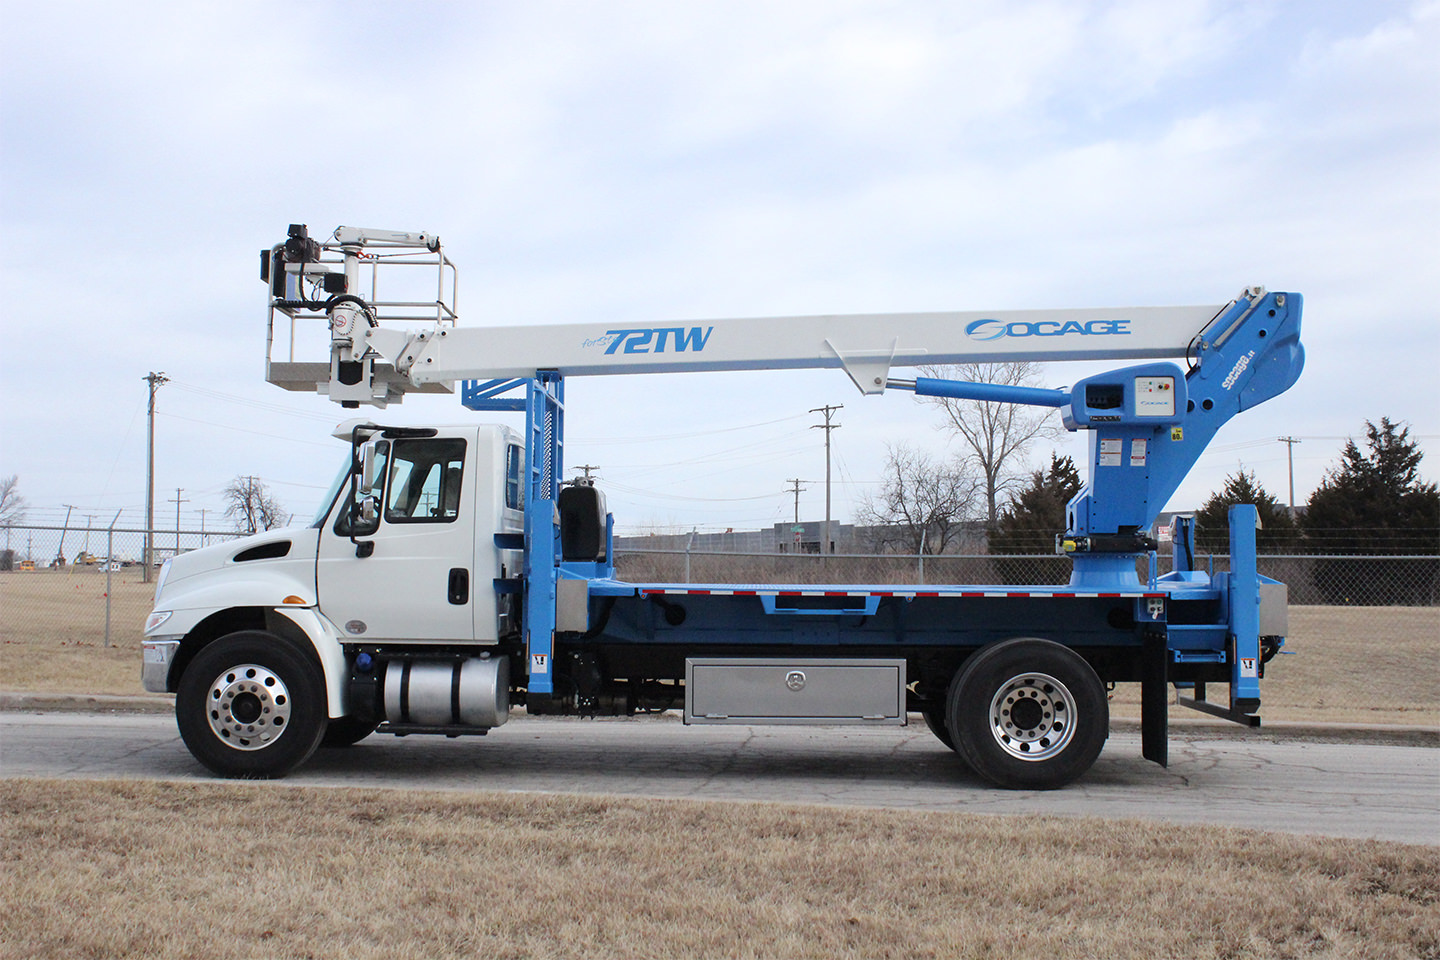 New Socage 72TW aerial lift for sale on International 4300SBA chassis Side